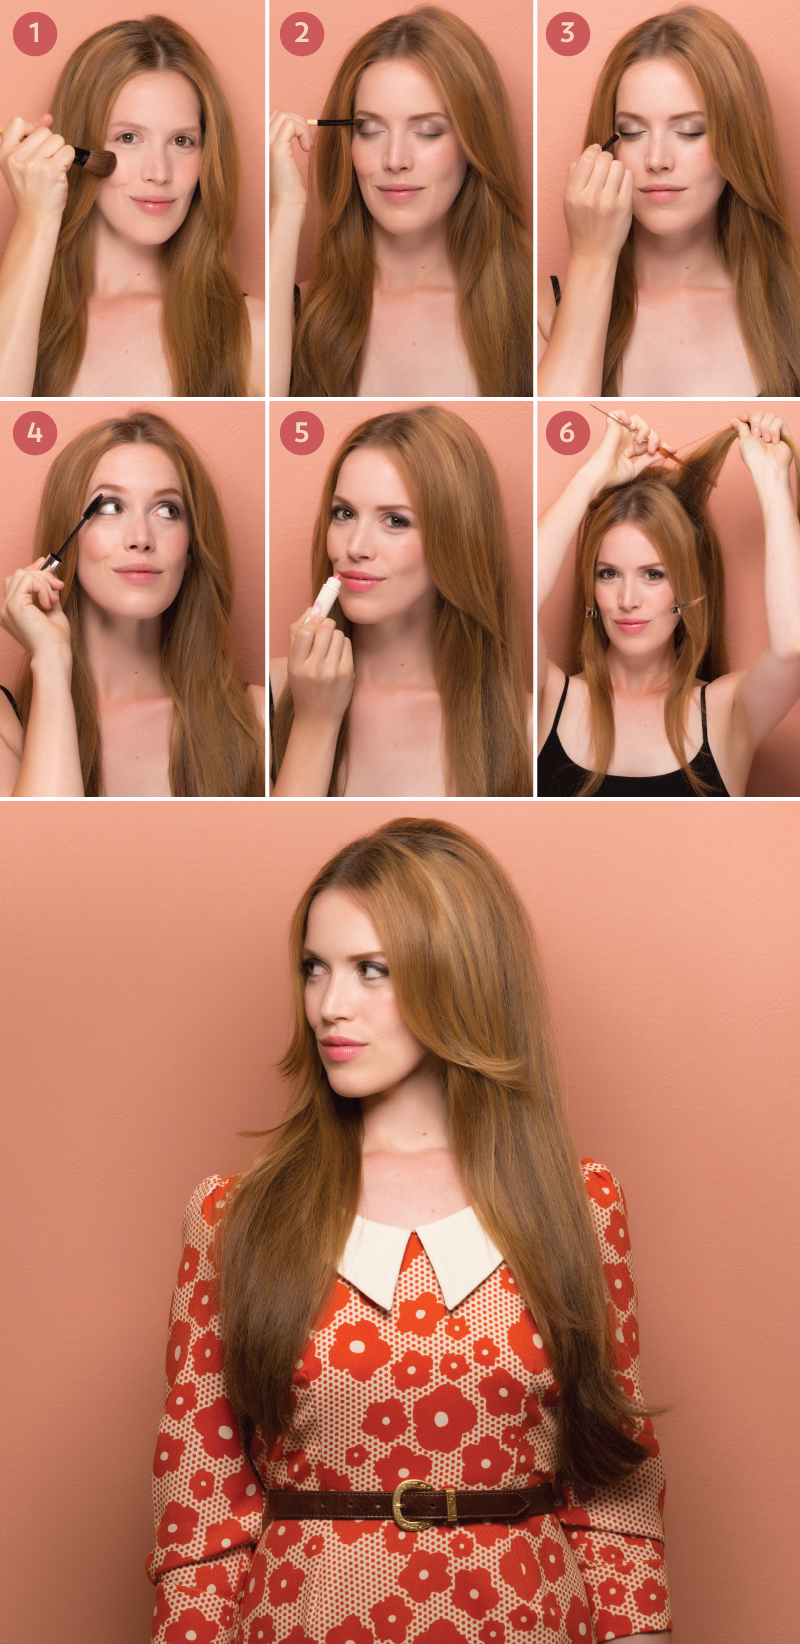 mod and marvelous: how to get swingin' '60s hair and makeup